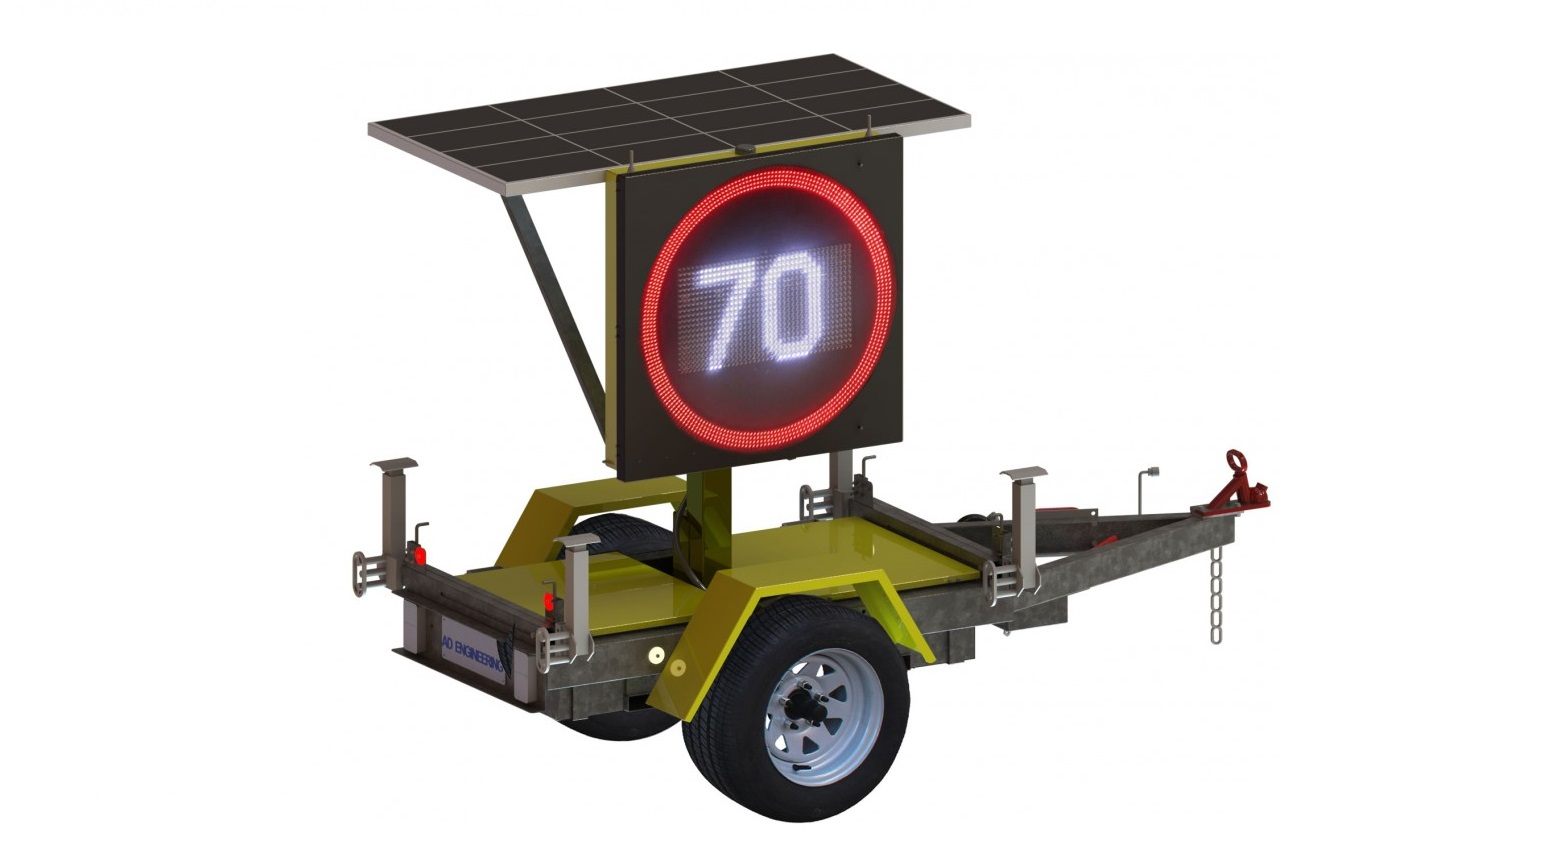 A.D. Engineering International awarded $3m contract by VicRoads for design and manufacture of 158 Trailer Mounted Electronic Variable Speed Limit Signs